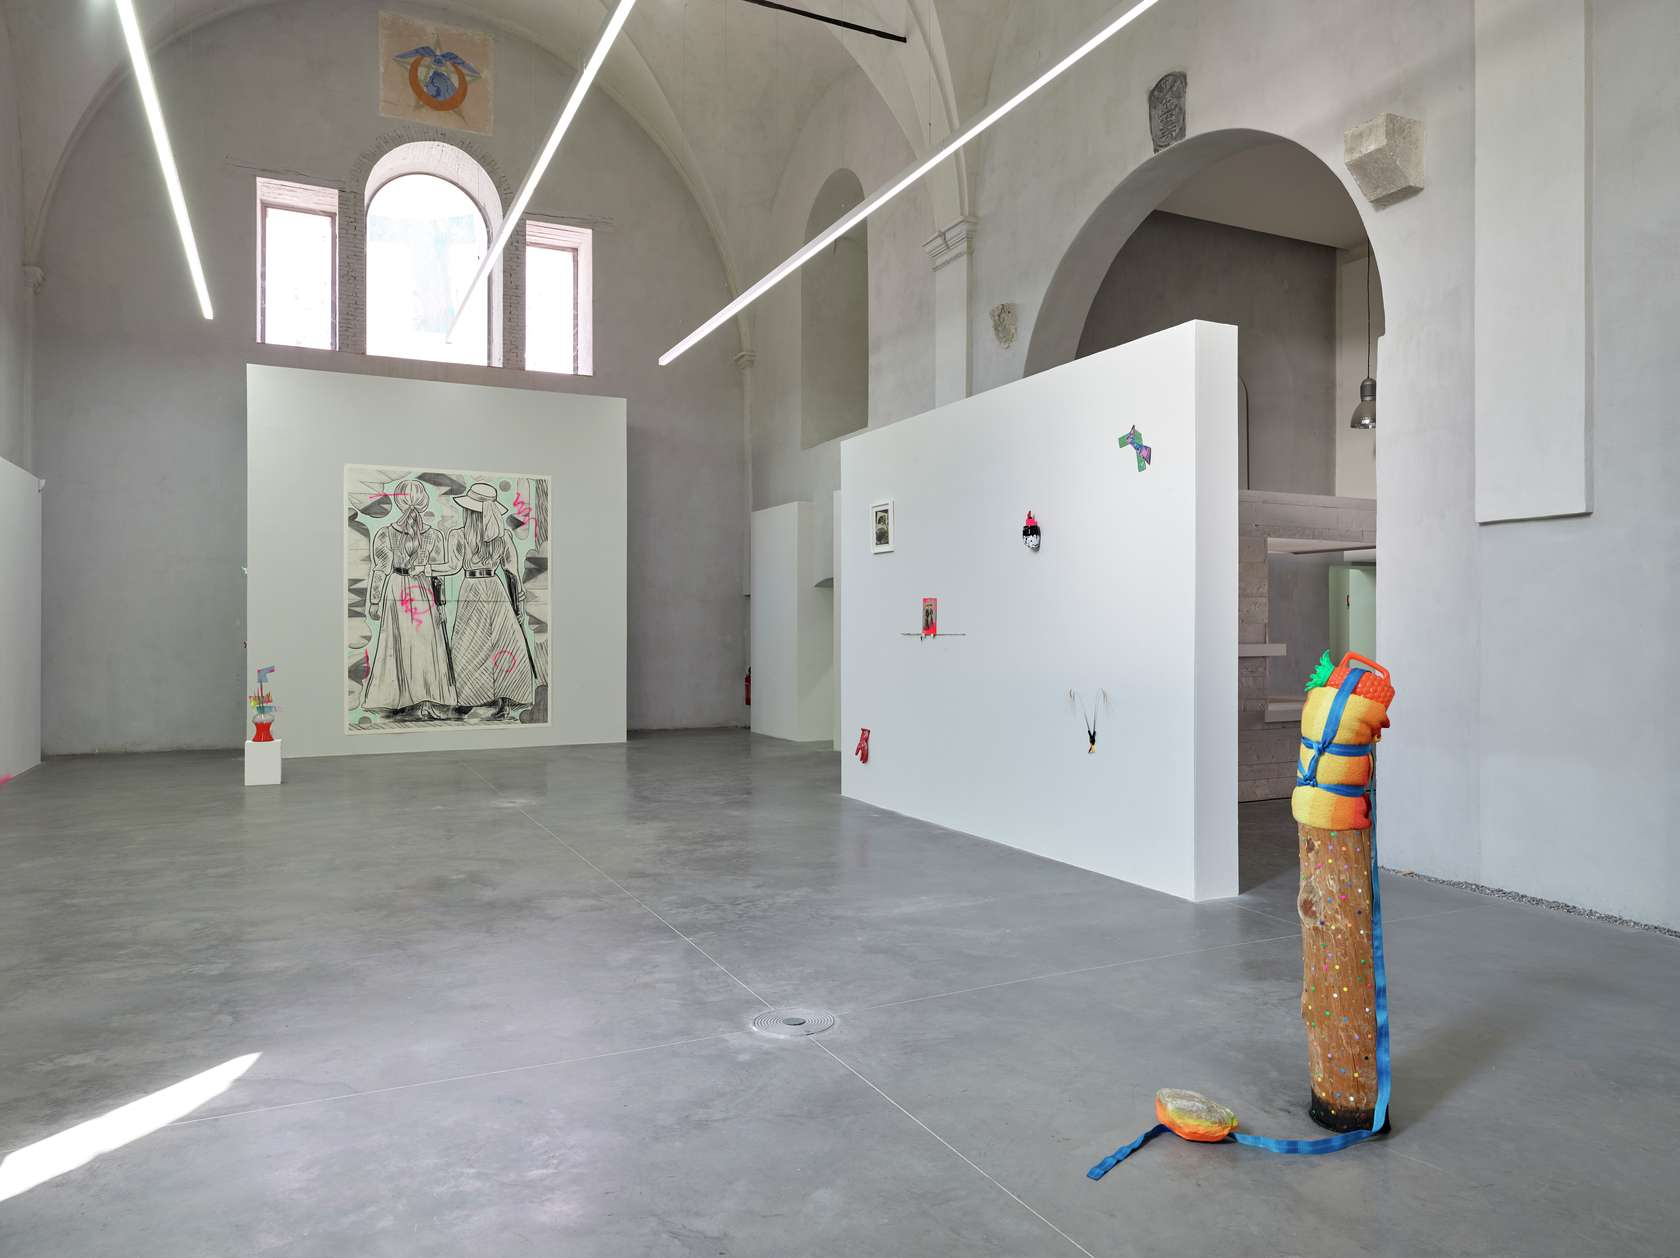 © f.deladerriere et Centre d'art contemporain Les Capucins, Embrun